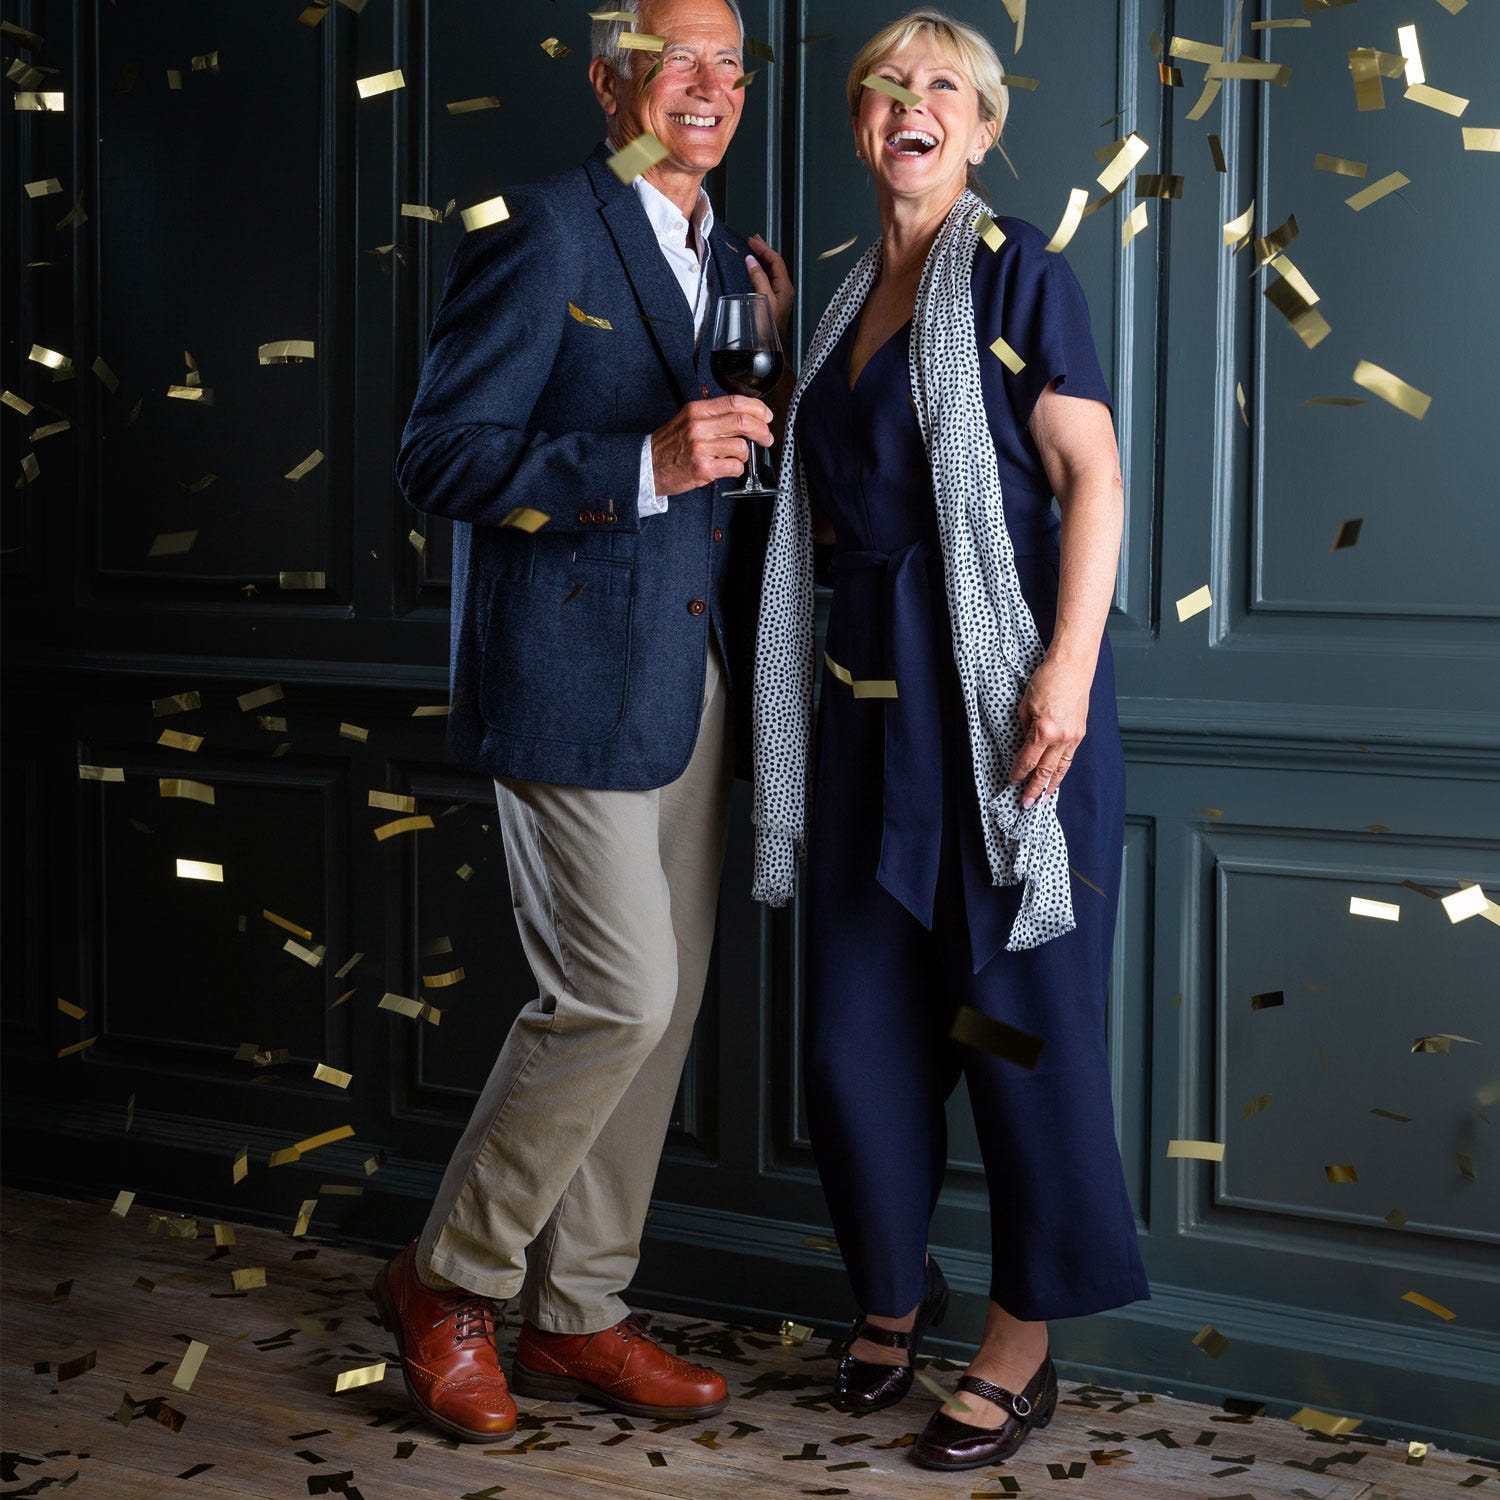 Man and woman dressed up with confetti falling around them